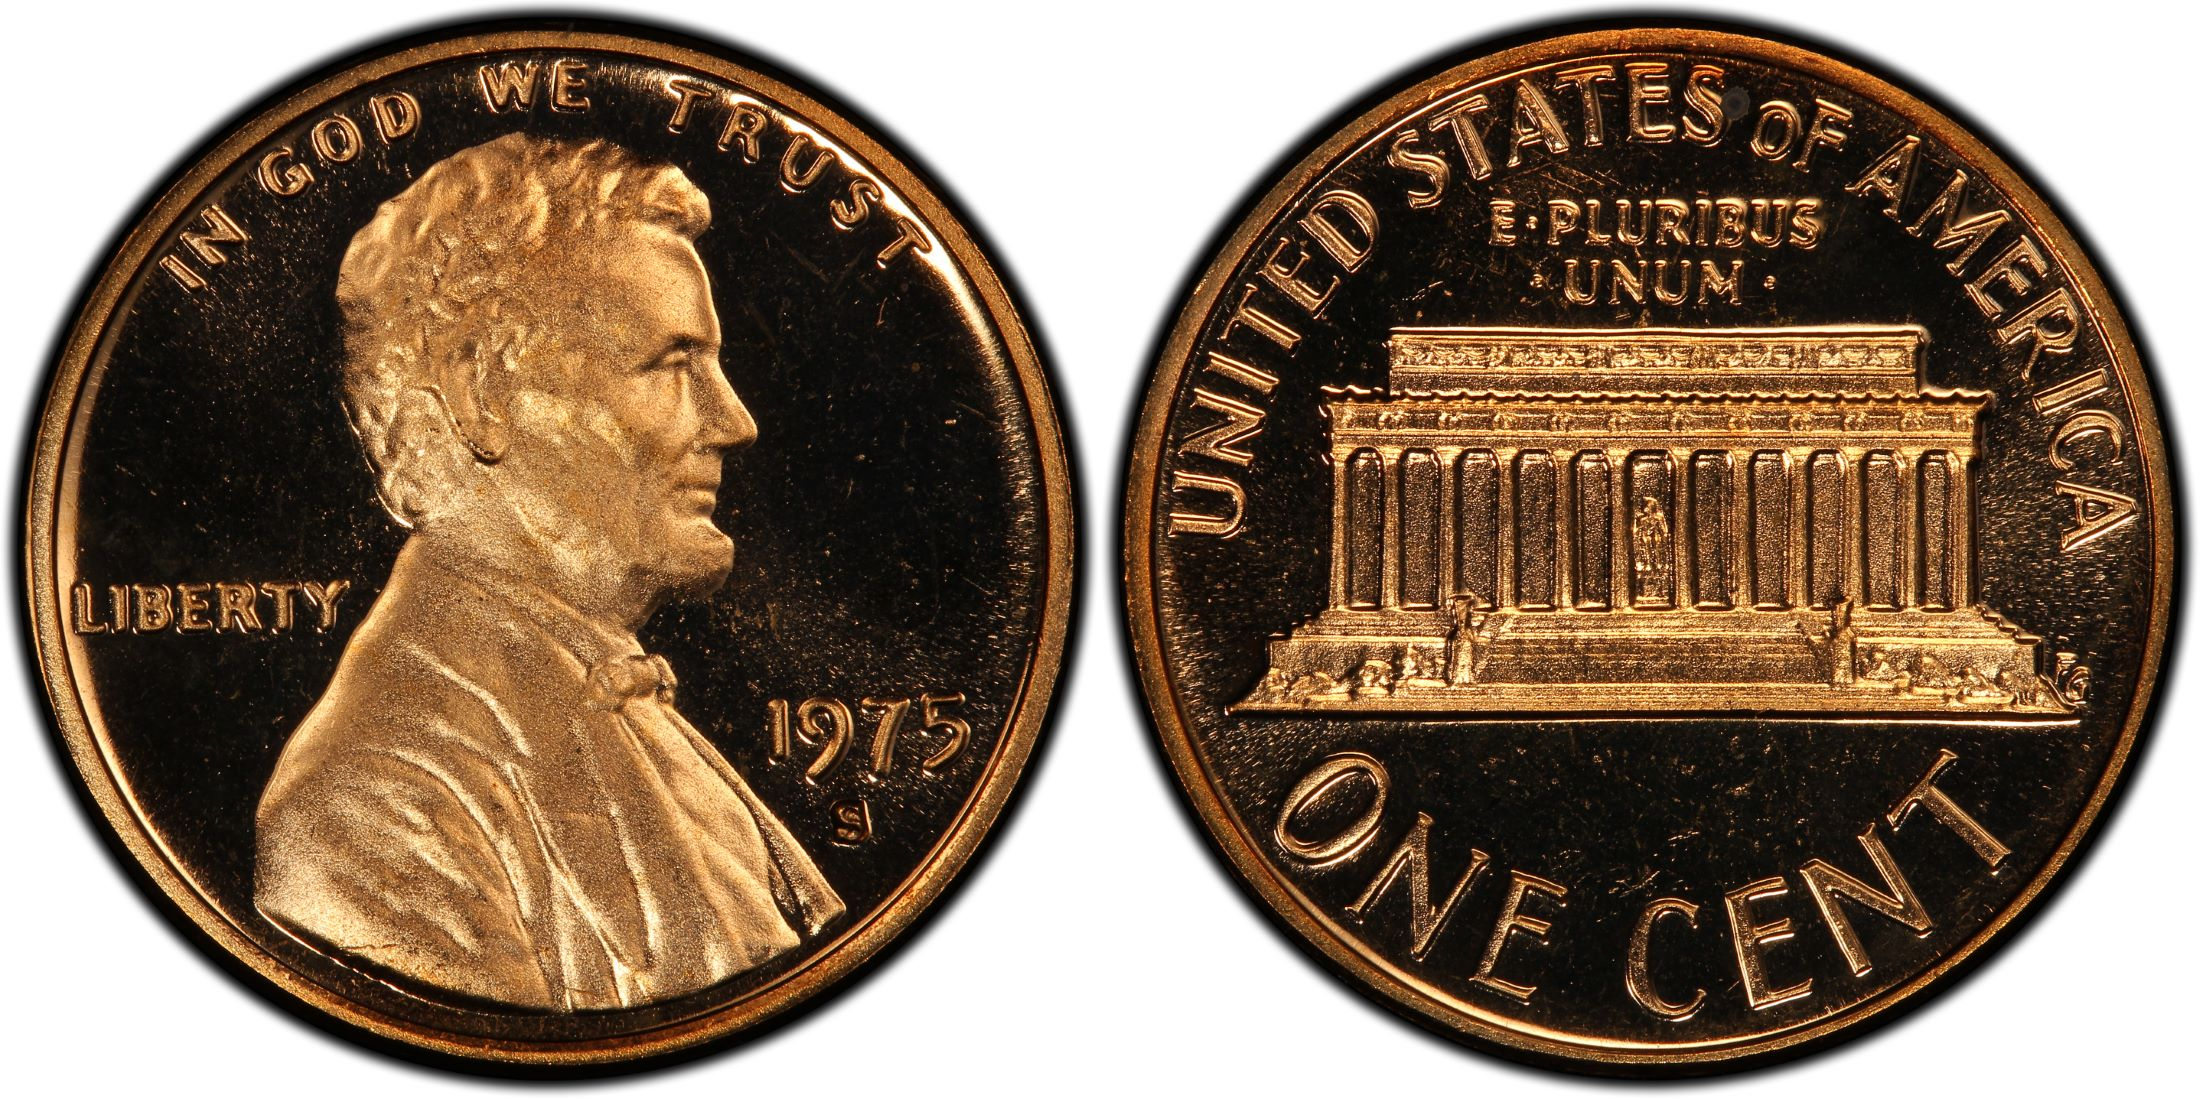 Mint Copper Coin 1c from Proof Set 1975 S Lincoln Penny One-Cent Proof U.S